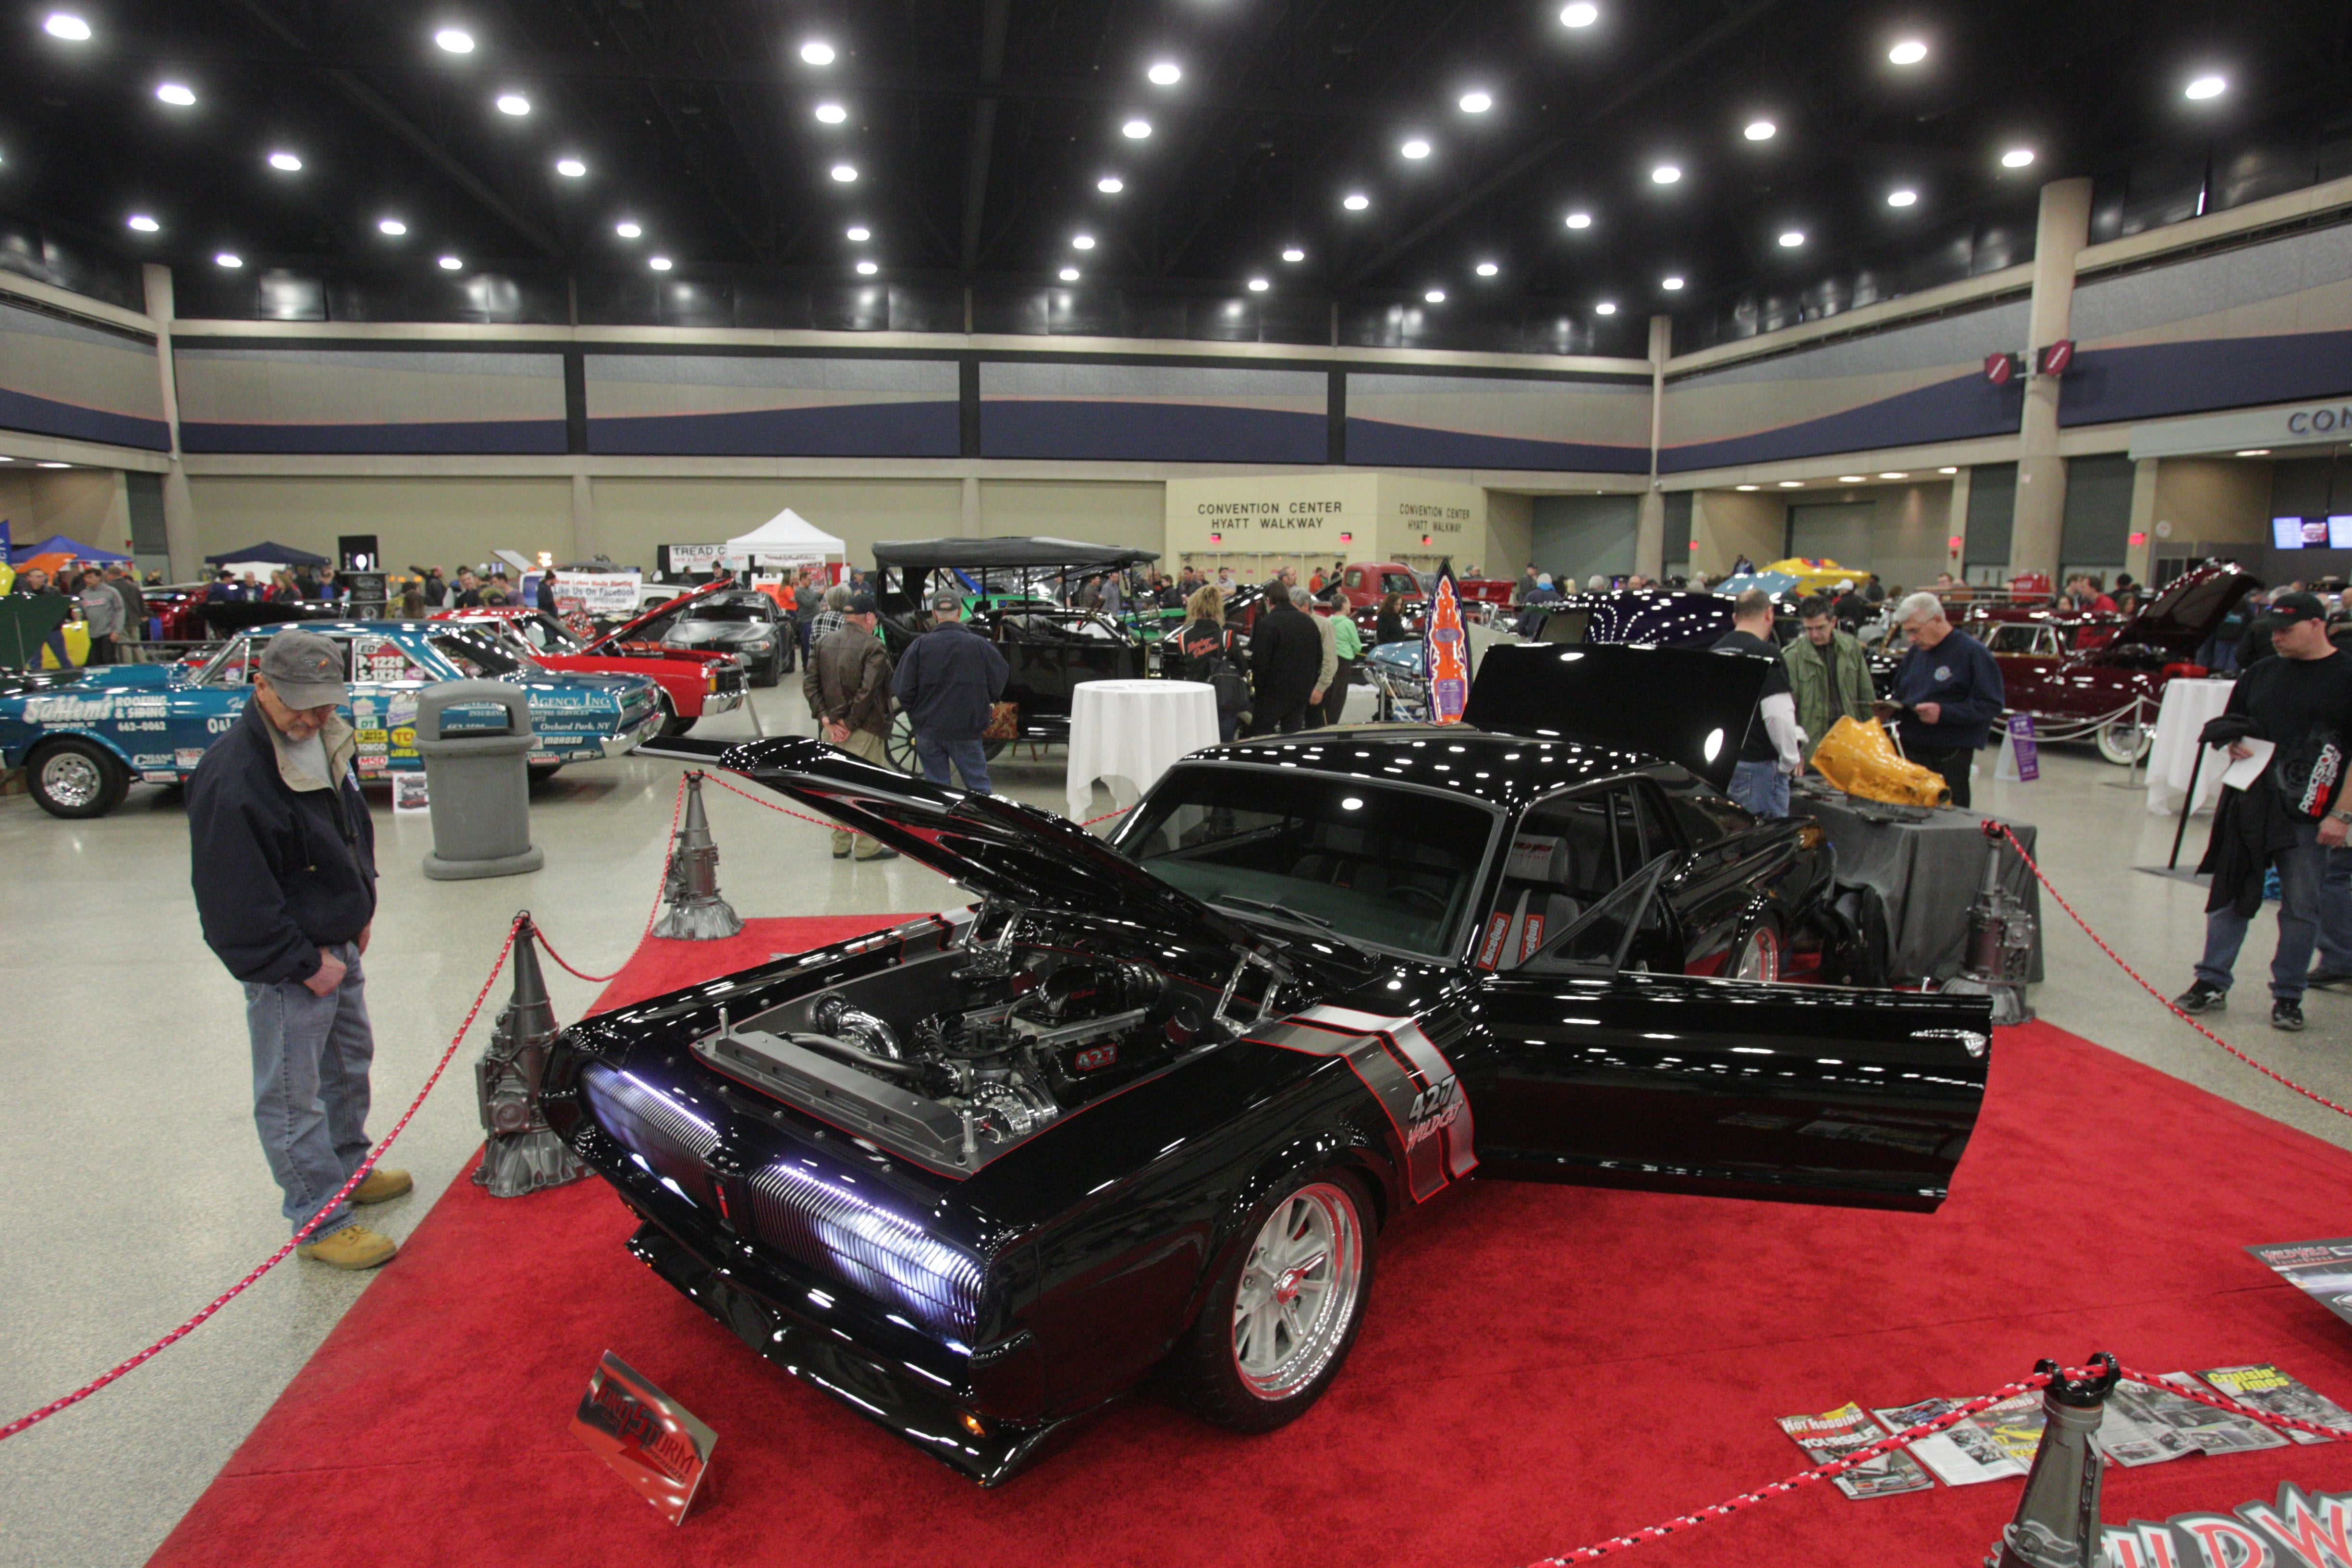 A 1967 Mercury Cougar, owned by Wes Adkins of Dover, Ohio, is one of the cars displayed at the 2014 Buffalo Motorama at the Buffalo Niagara Convention Center Saturday. Classic cars from almost every era are on display through today.